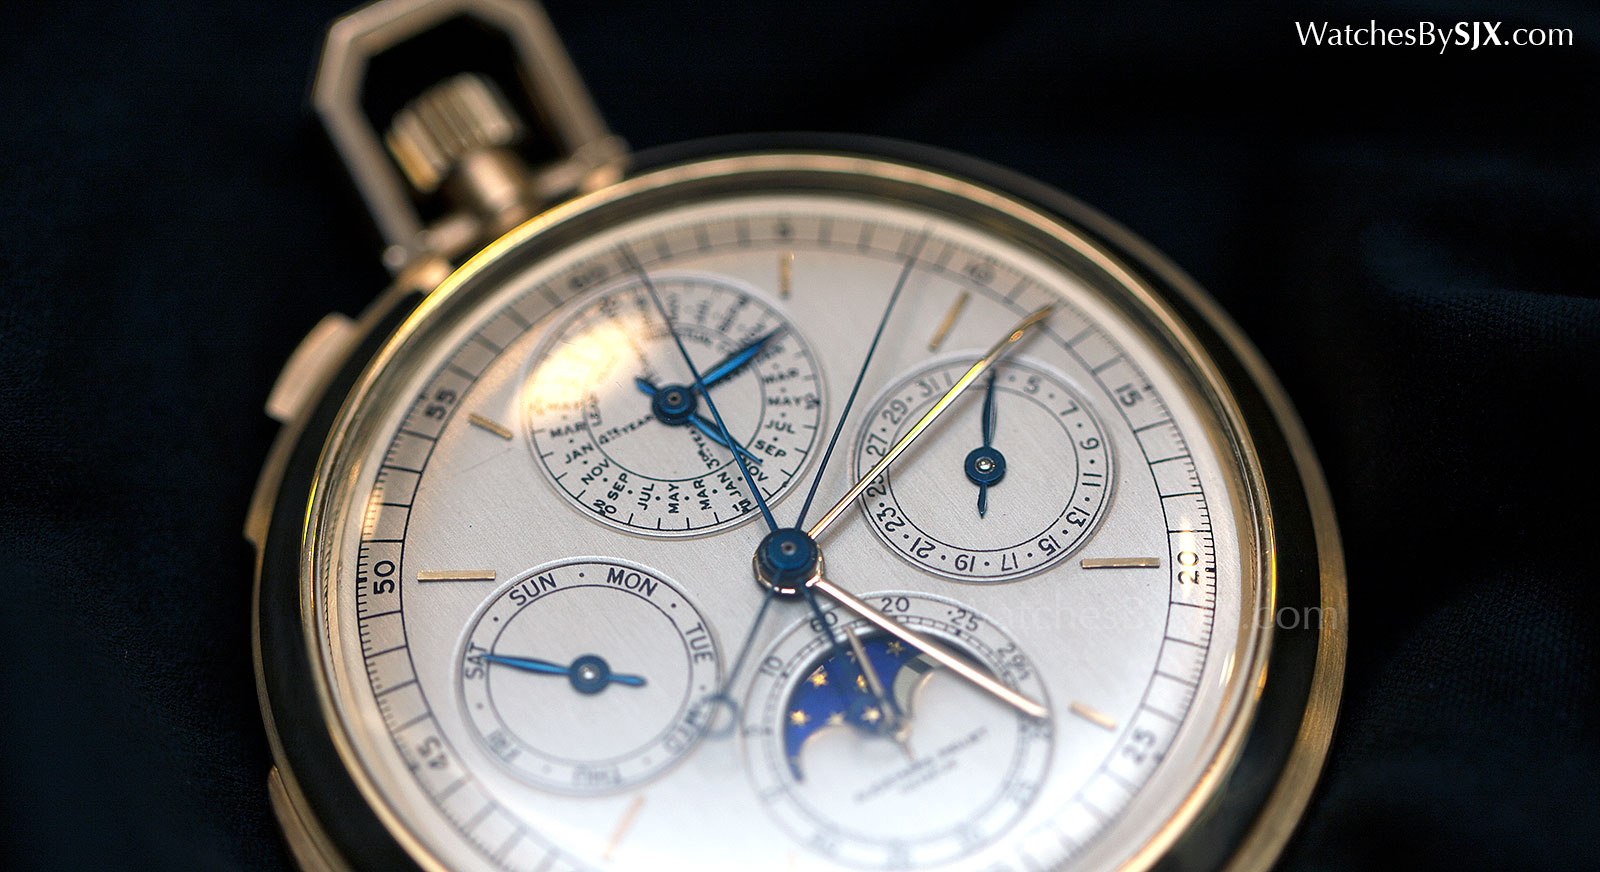 Audemars Piguet grand complication pocket watch c. 1970 3